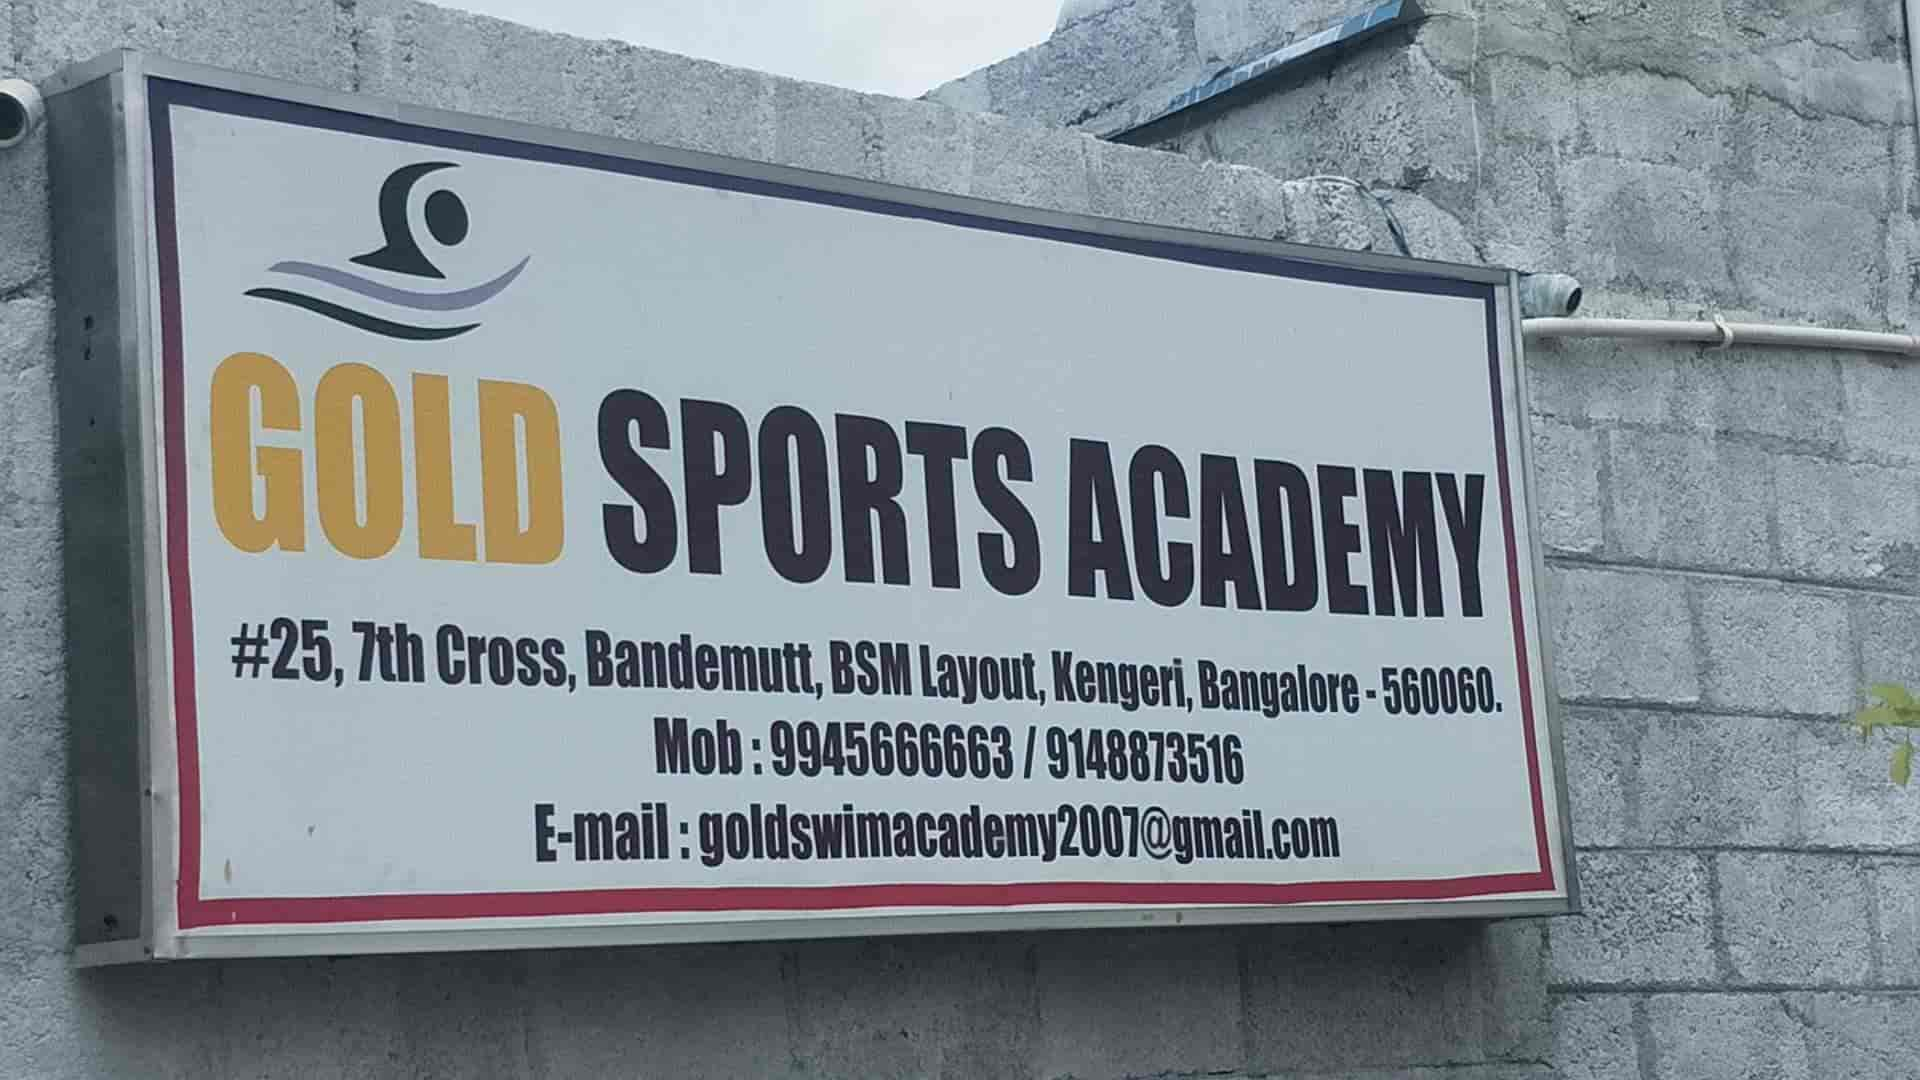 Gold Sports Academy, Kengeri - Swimming Classes in Bangalore - Justdial